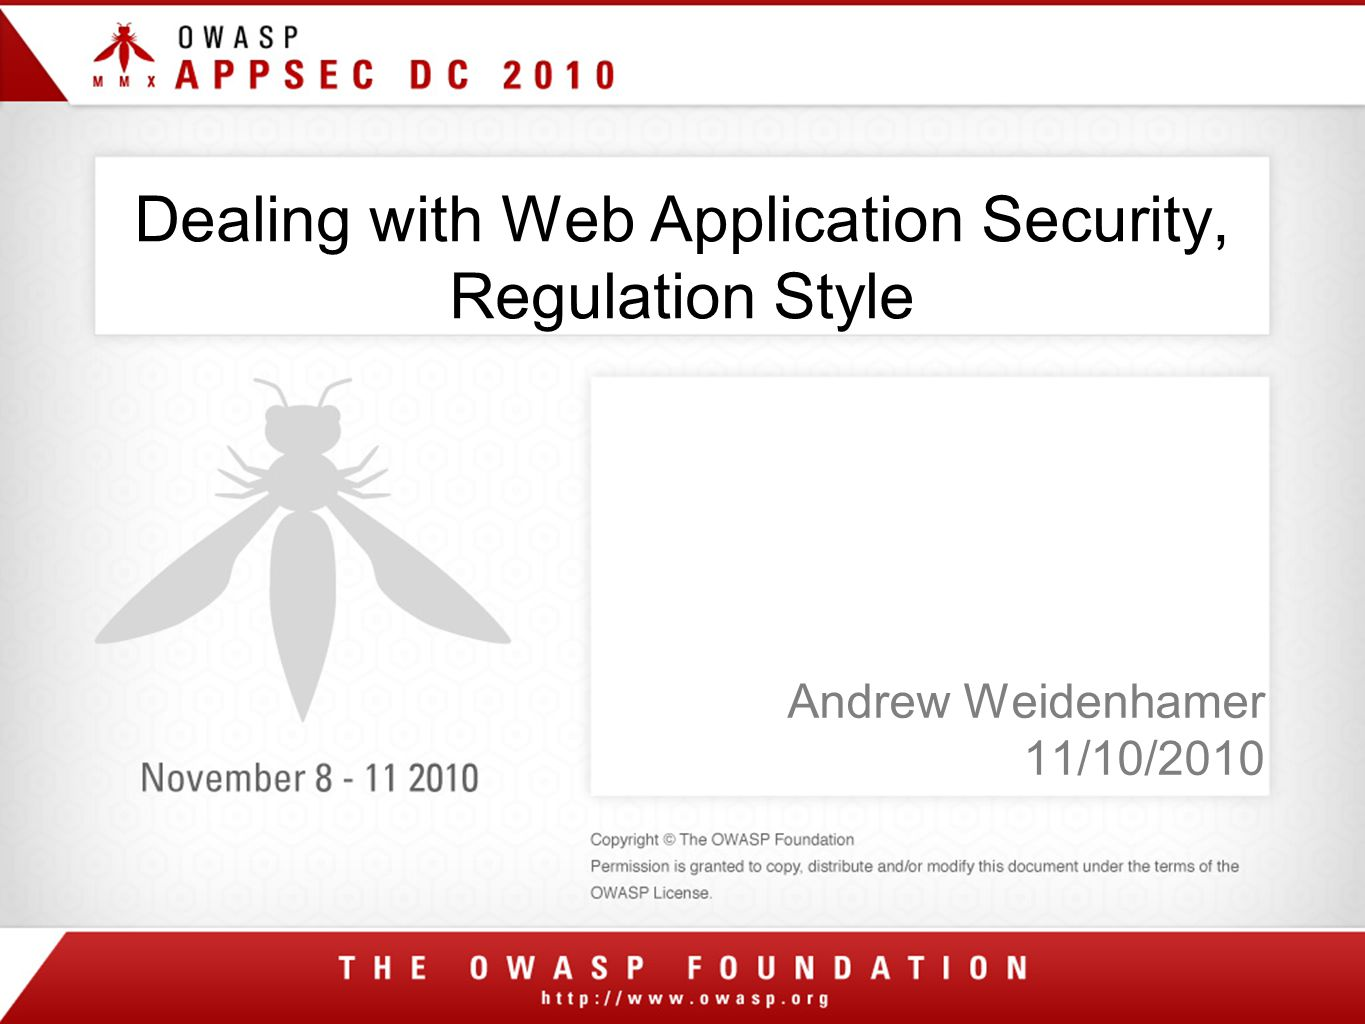 Dealing with Web Application Security, Regulation Style